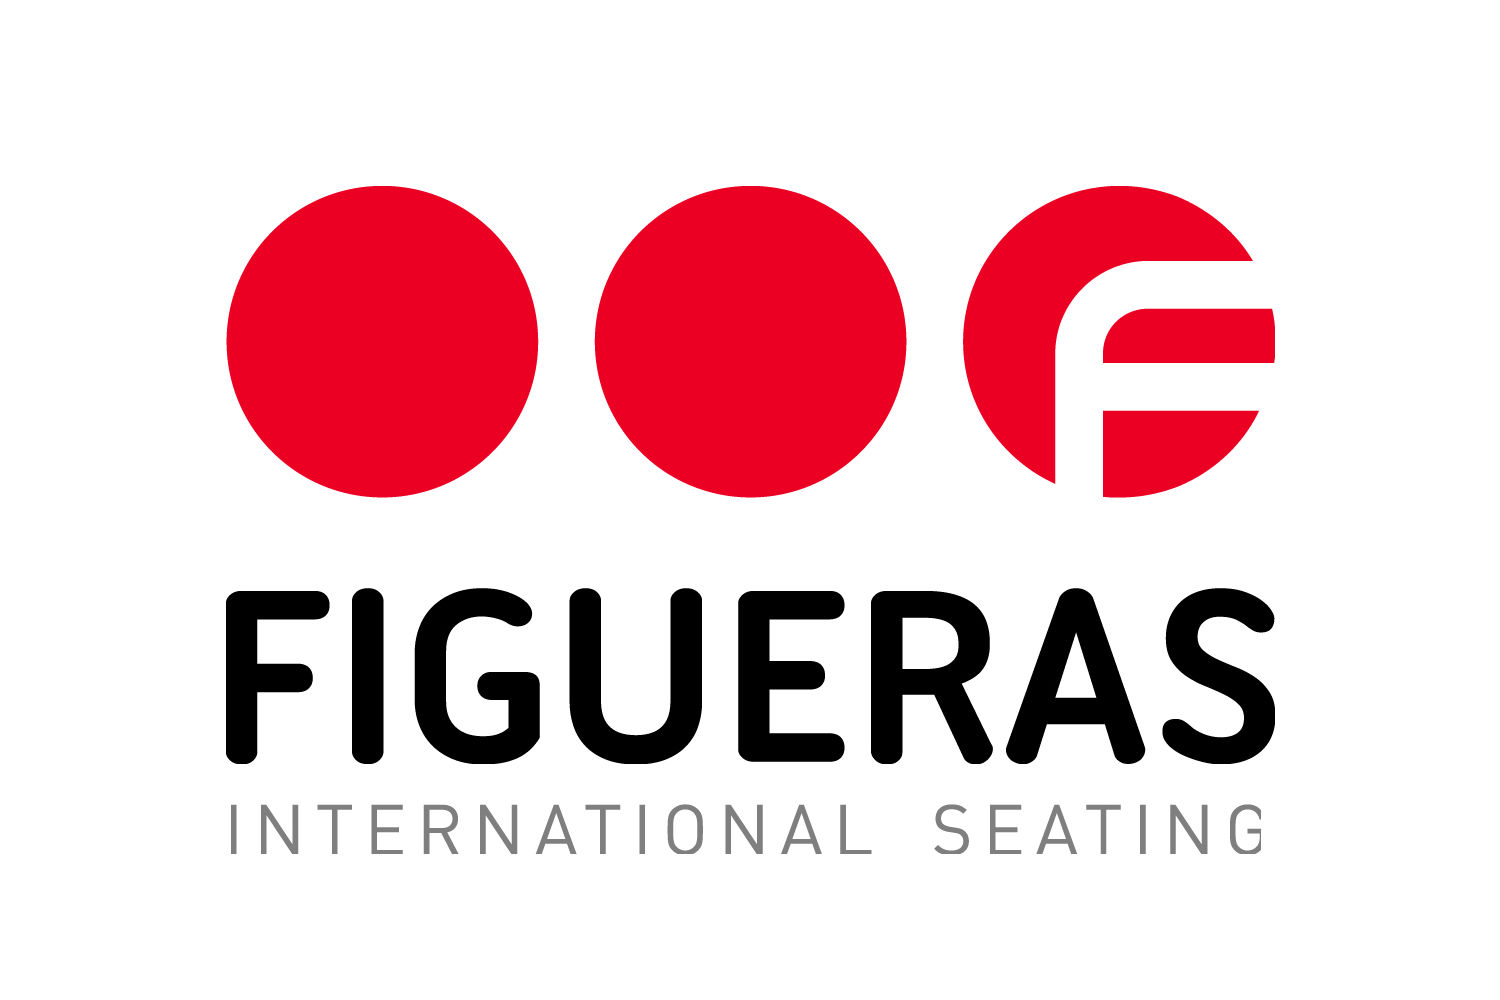 Figueras International Seating